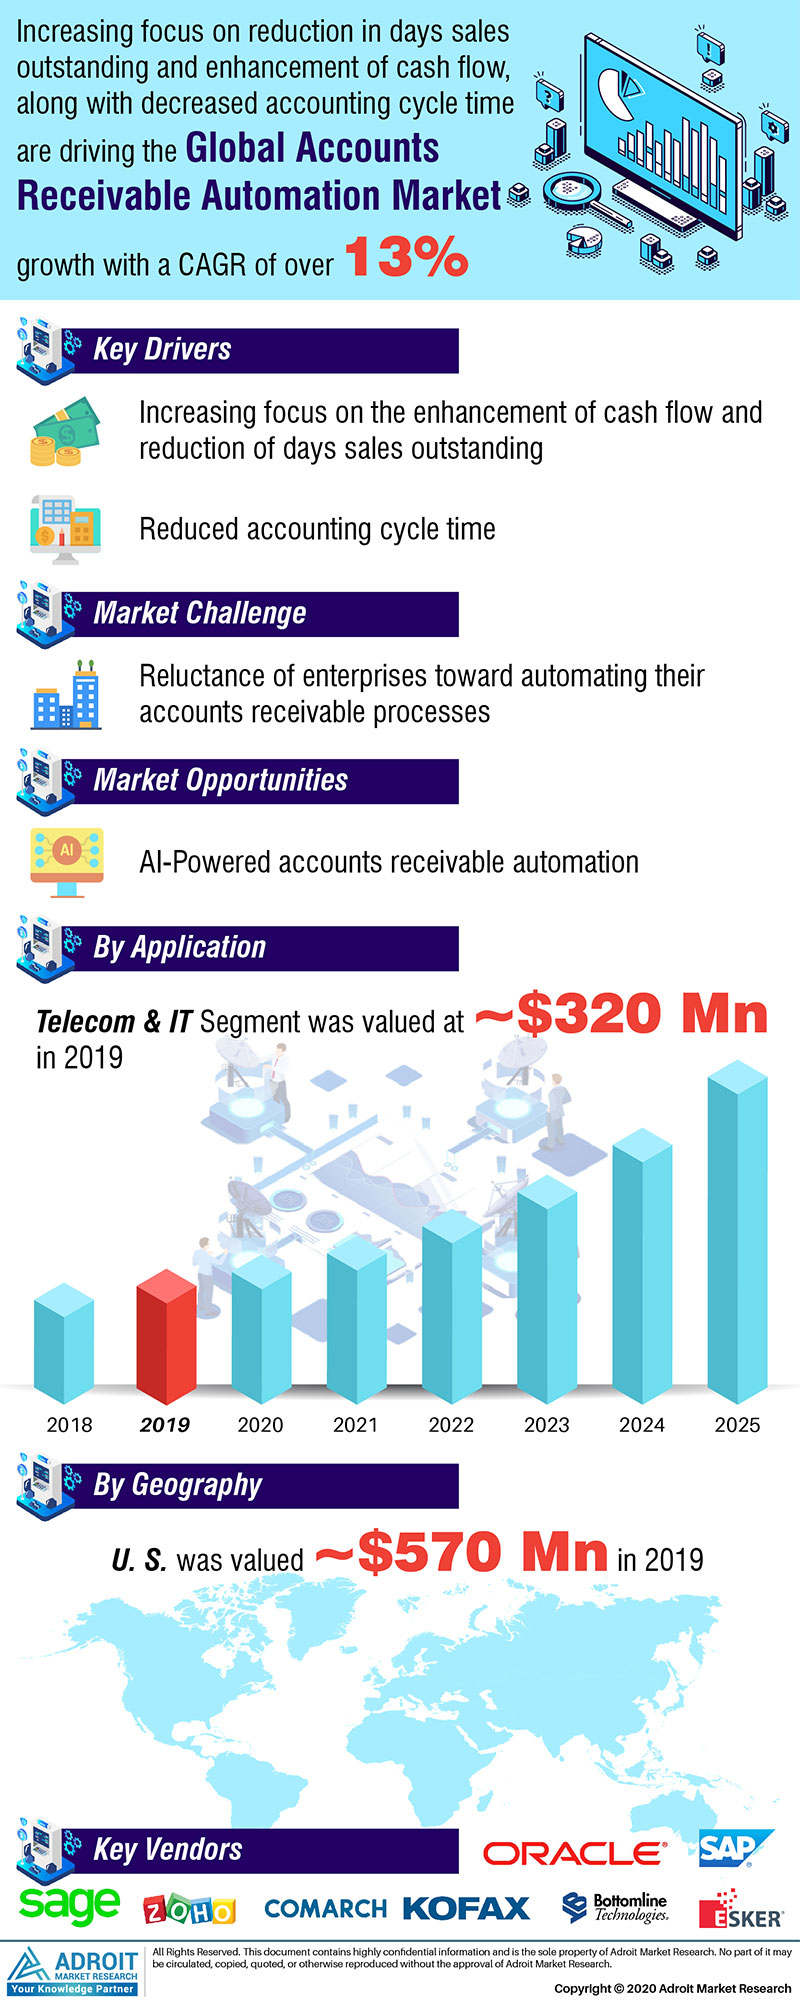 Accounts Receivable Automation Market Size 2017 By Application, Product, Region and Forecast 2019 to 2025